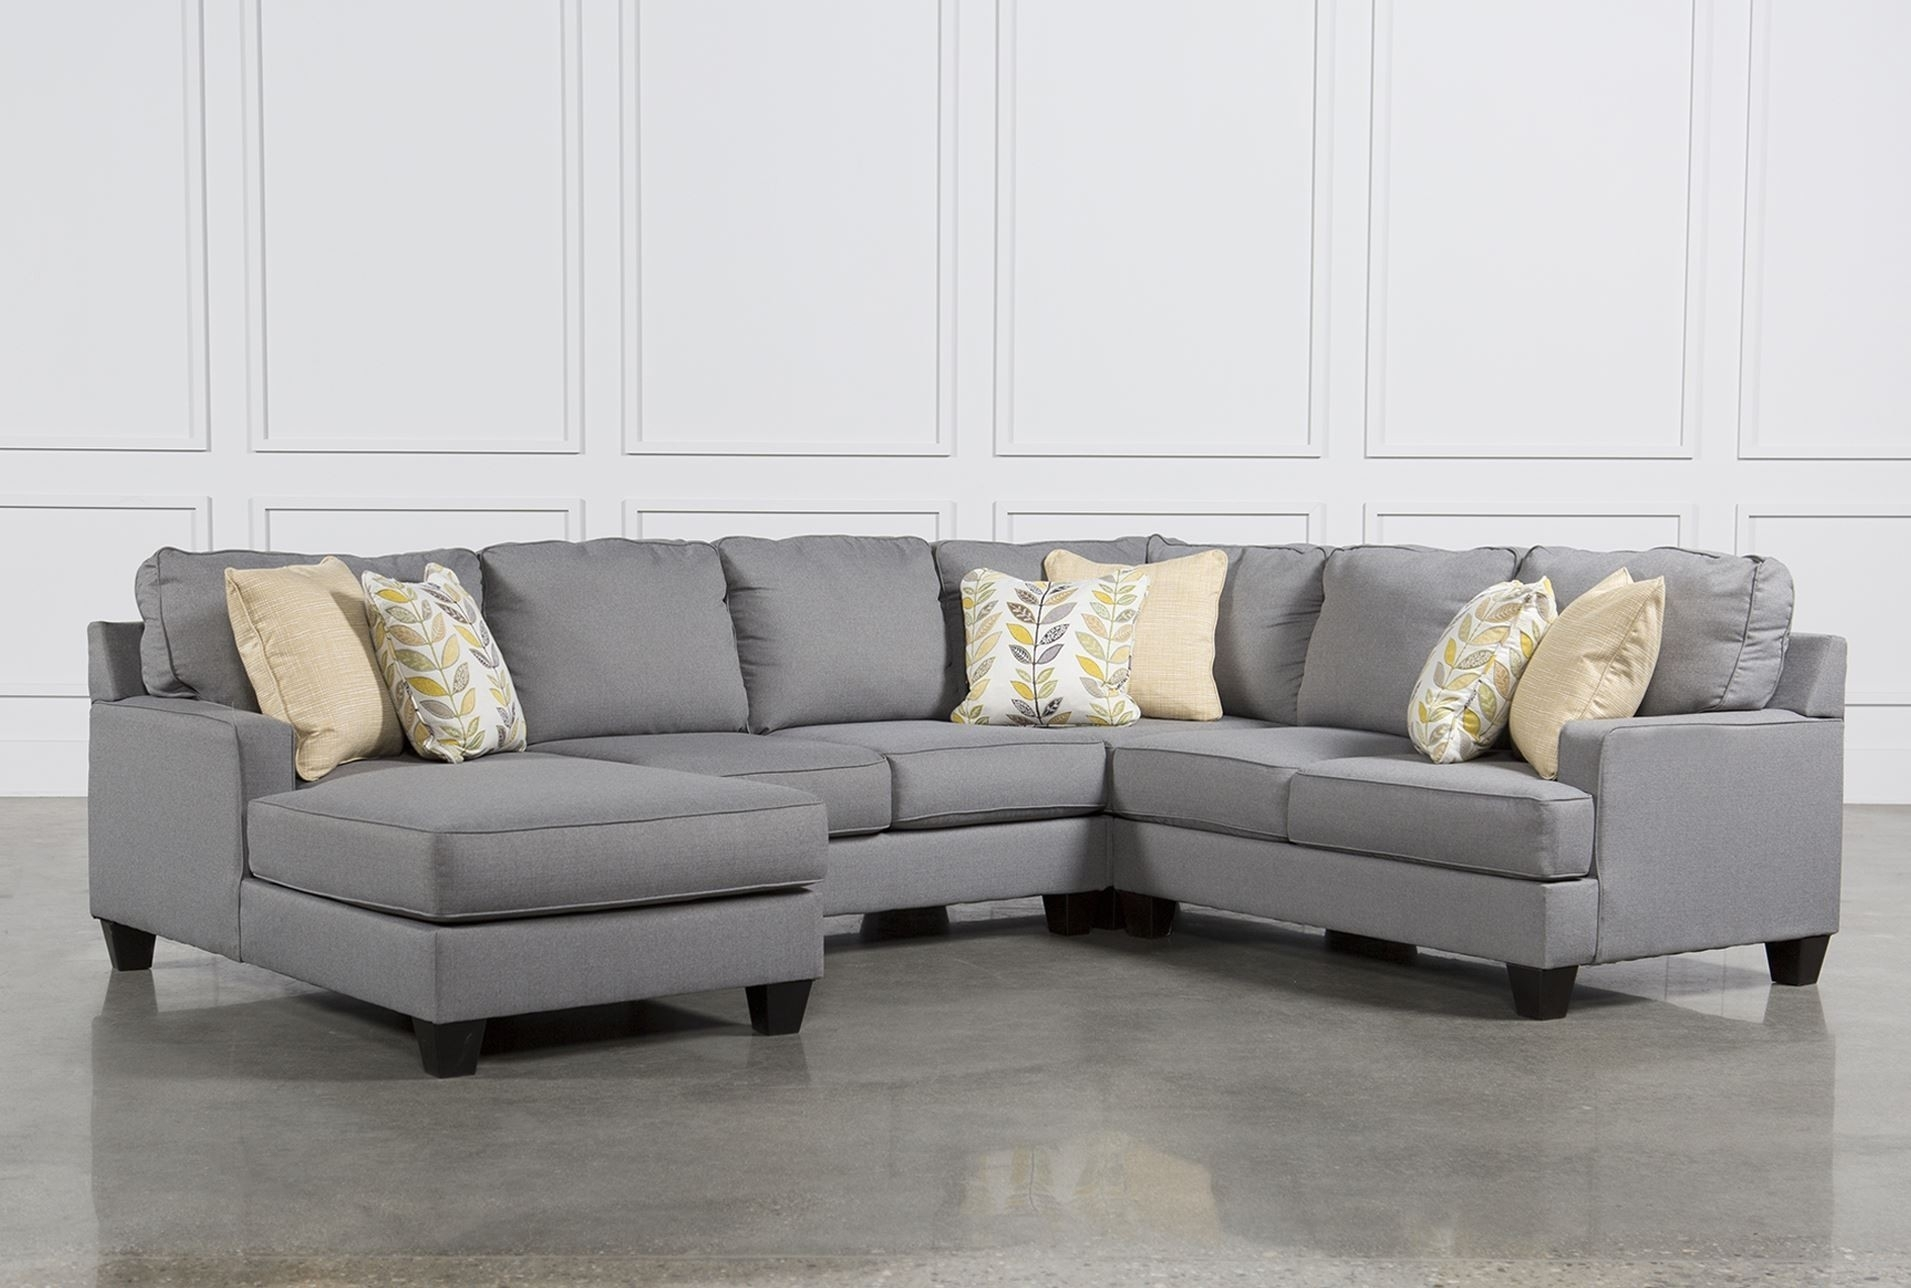 Living Spaces Sectional Couches – Implantologiabogota (Image 17 of 25)